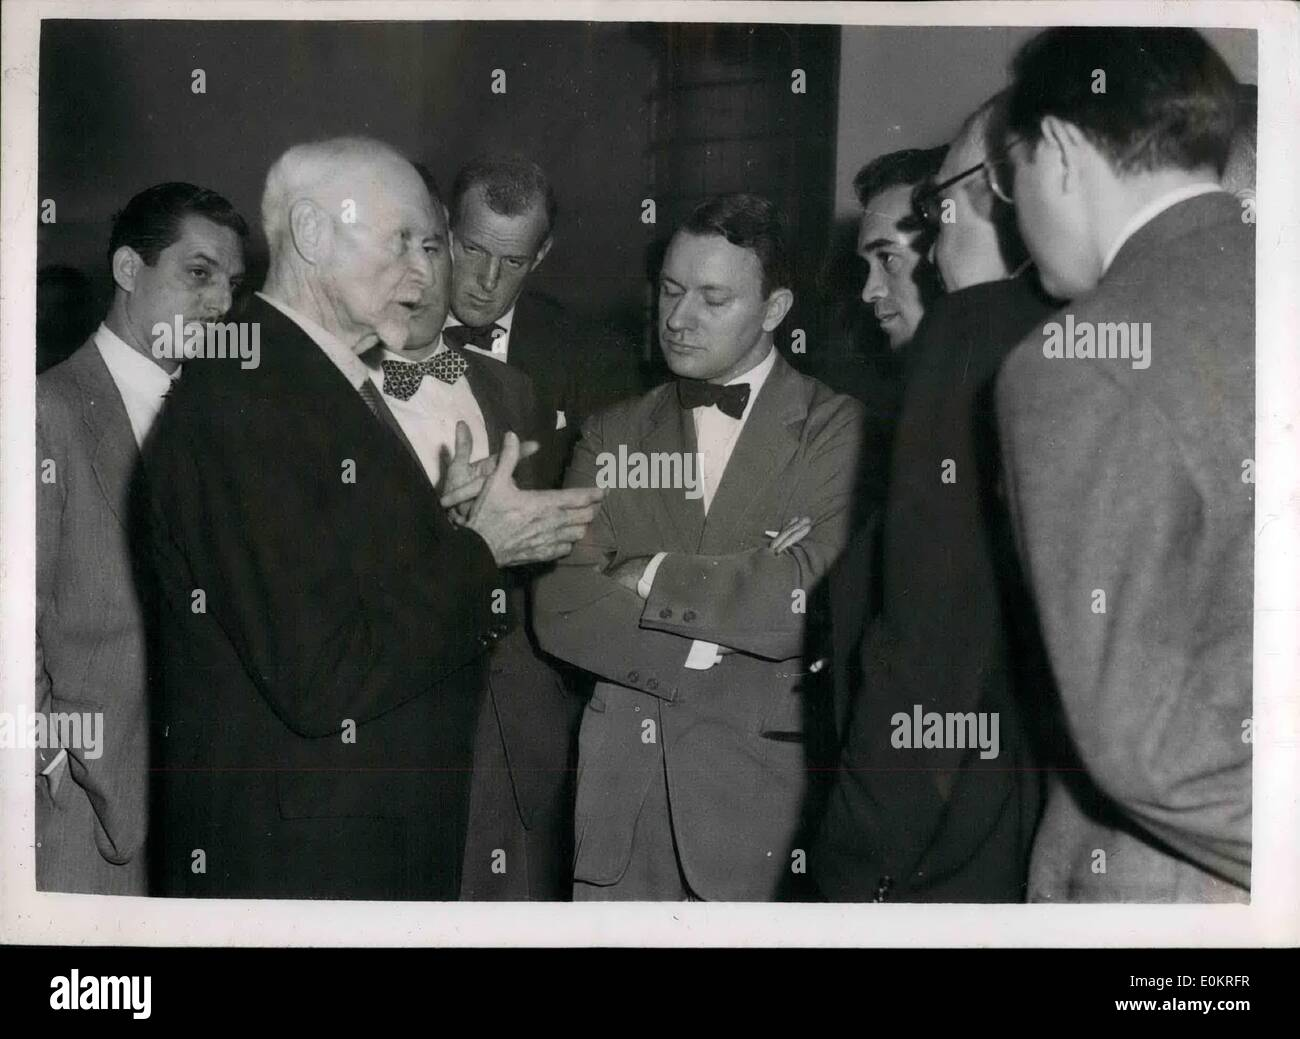 Oct. 10, 1946 - United Nations General Assembly in U.S. 27.10.46. At the General Assembly of the United Nations at Flushing Meadows, New York, General Smuts gave a press interview. Here he is seen talking to members of the Press. - Stock Image